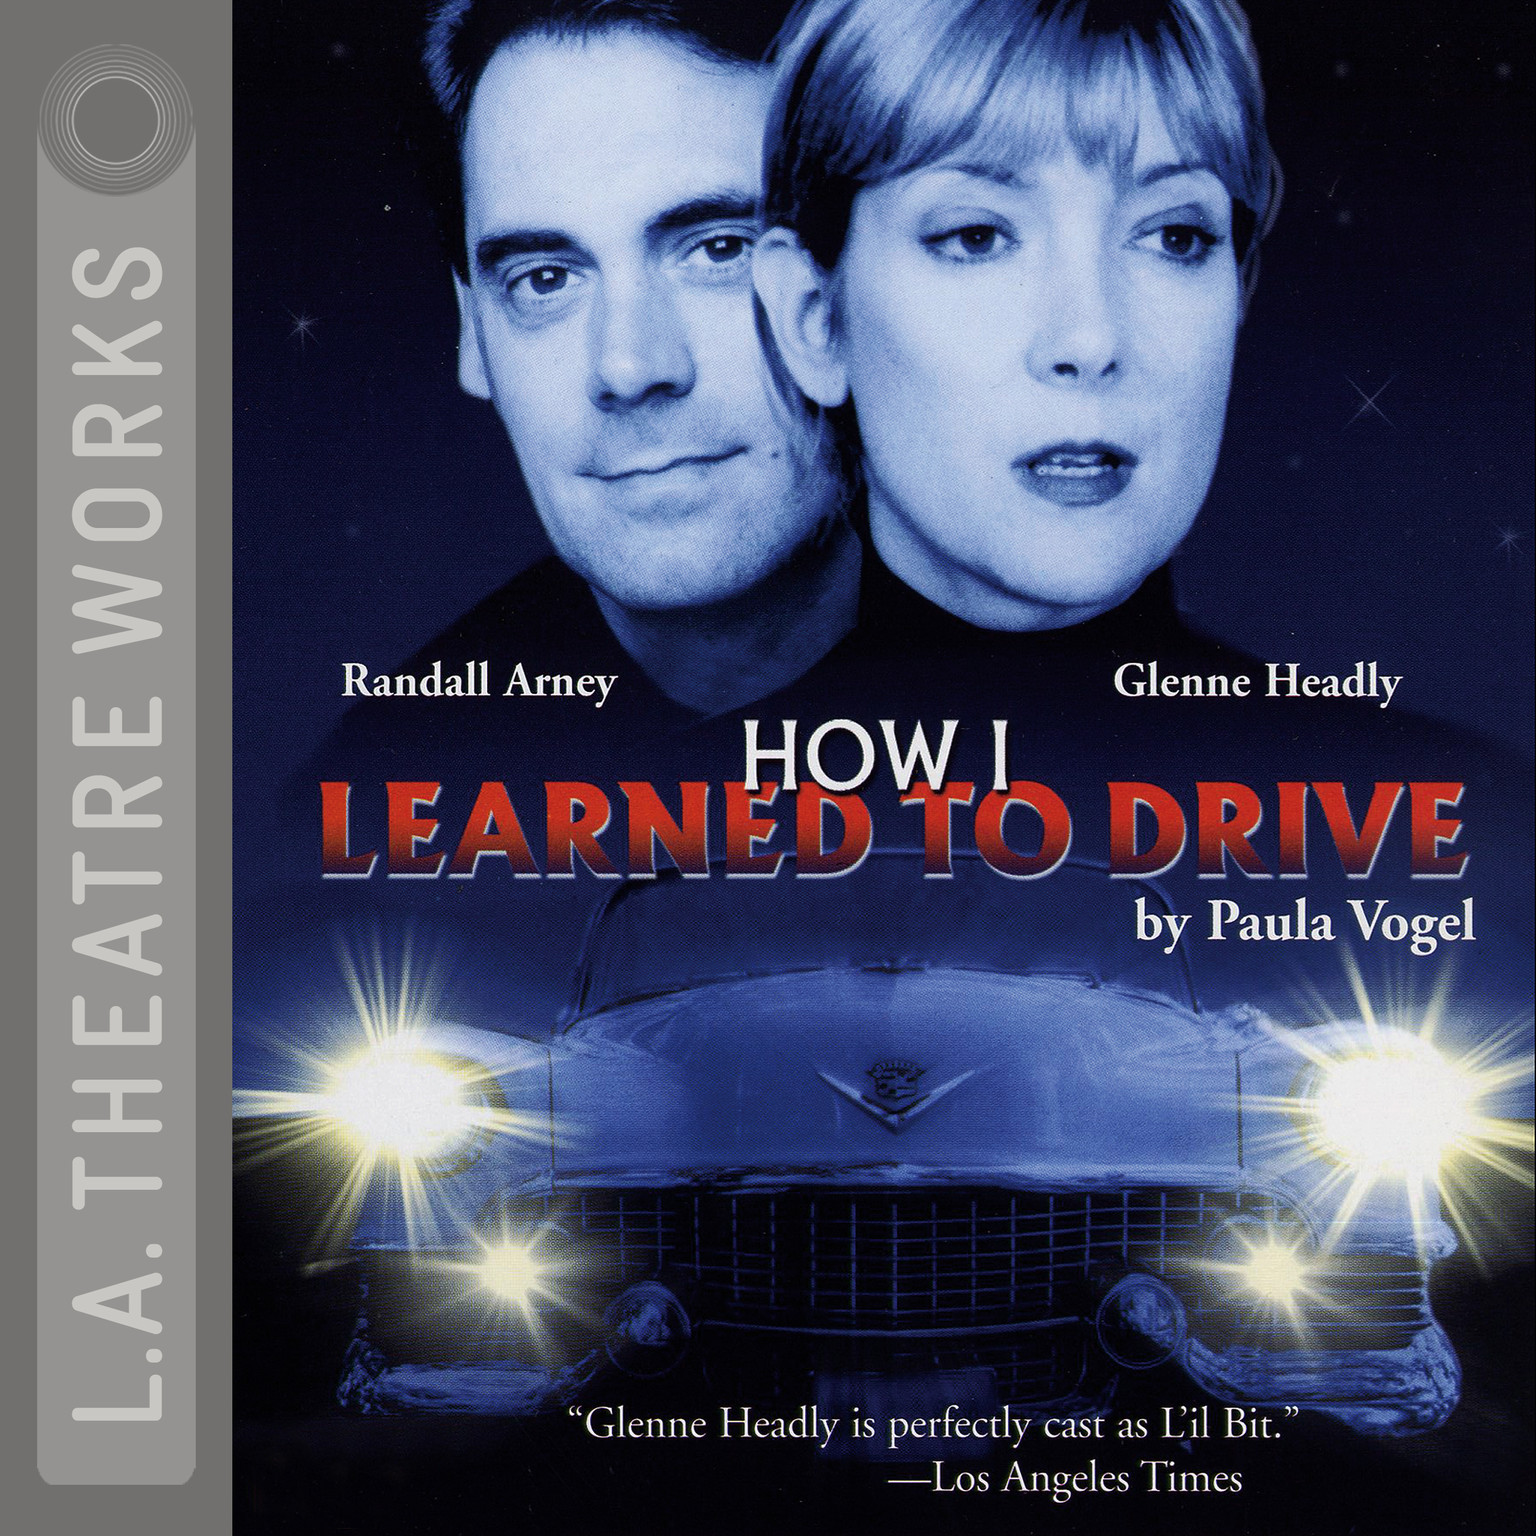 how i learned to drive analysis This is an extremely and exceptionally disturbing play with the mindset that this play was about driving, the intense sexual nature of the script caught me off-guard during my first reading.